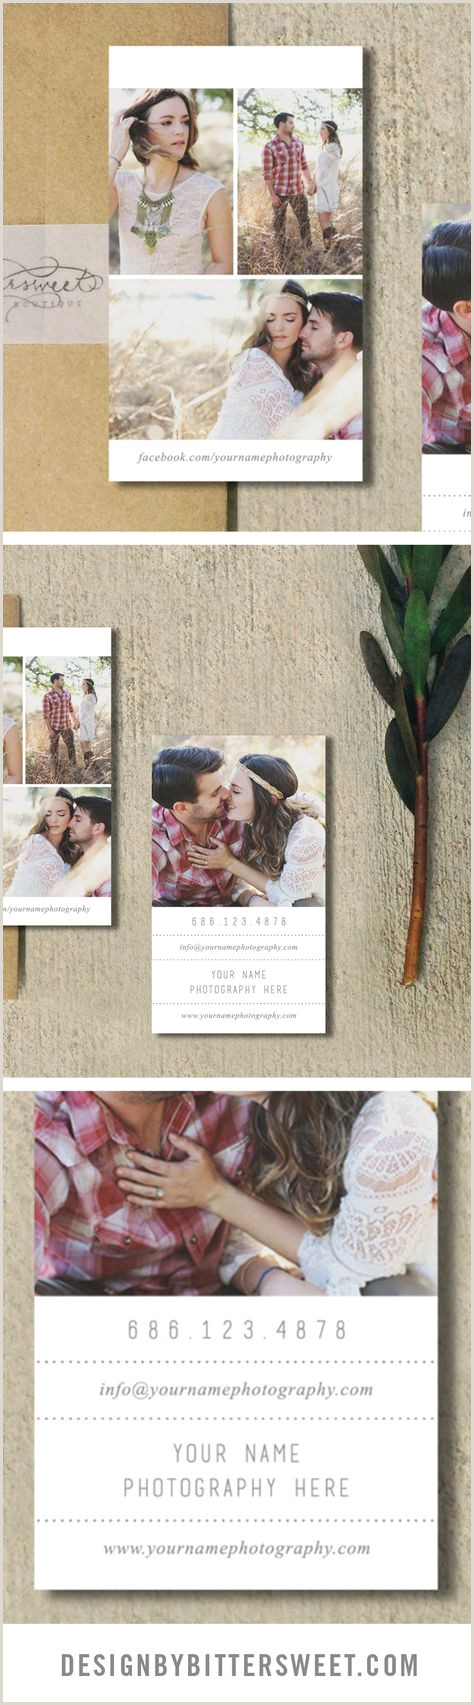 Business Card Ideas Photography Graphy Business Cards Template Photographers 16 Ideas